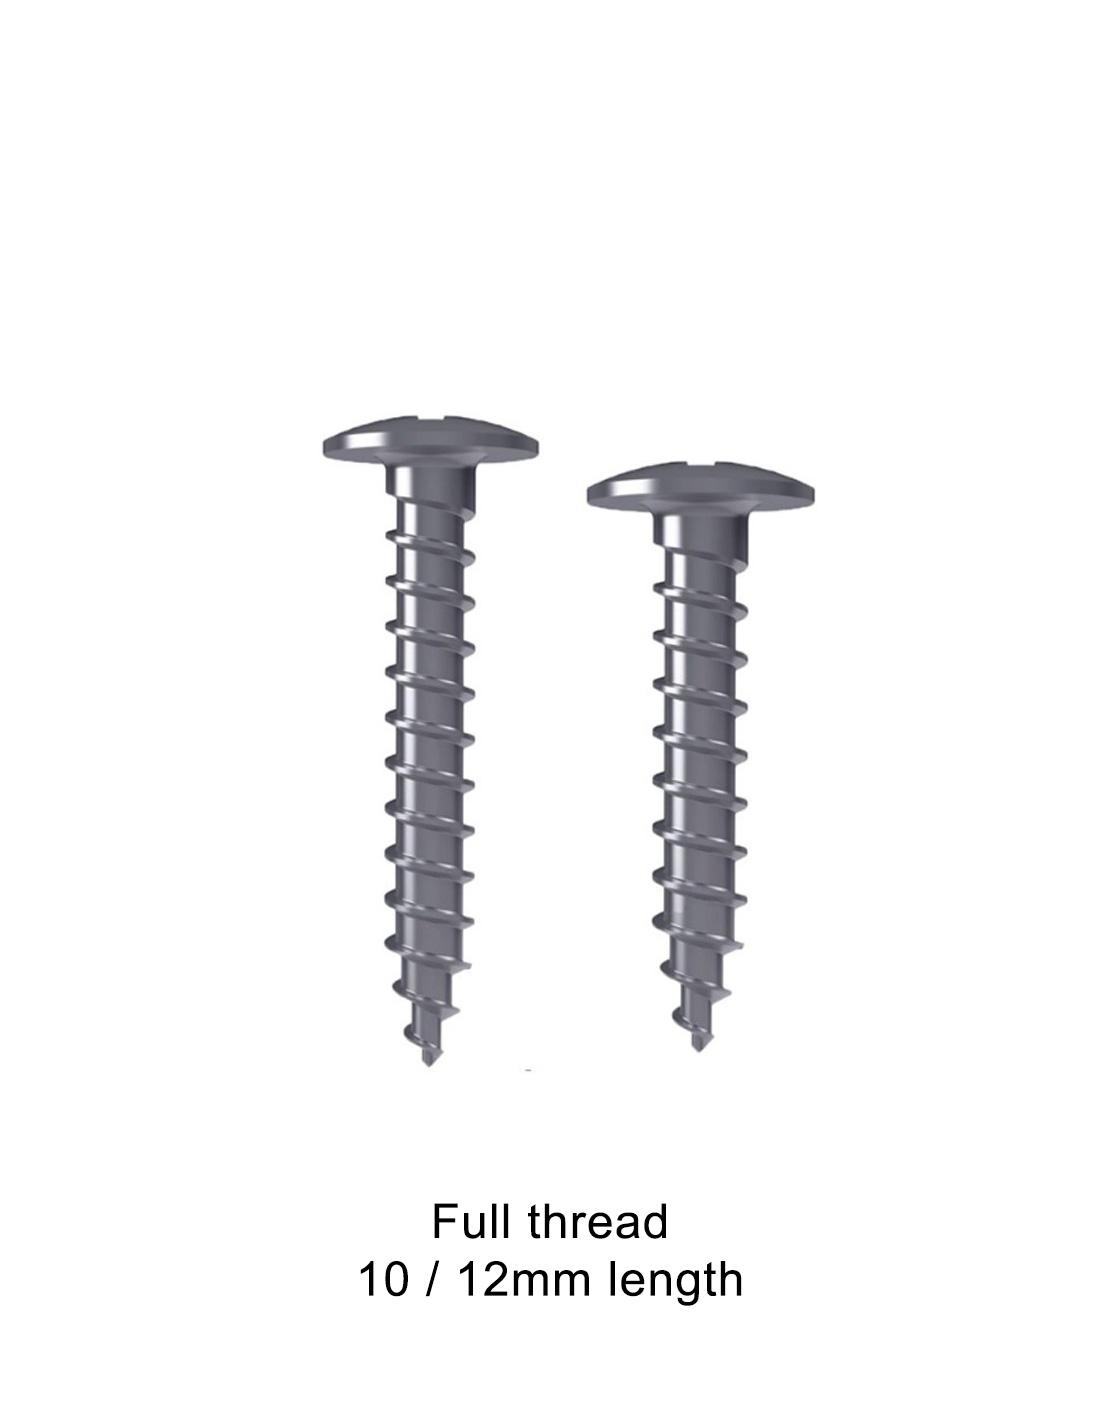 dsi-surgical-gbr-bone-tenting-screw-full-thread-membrane-fixation GBR Technique Tools